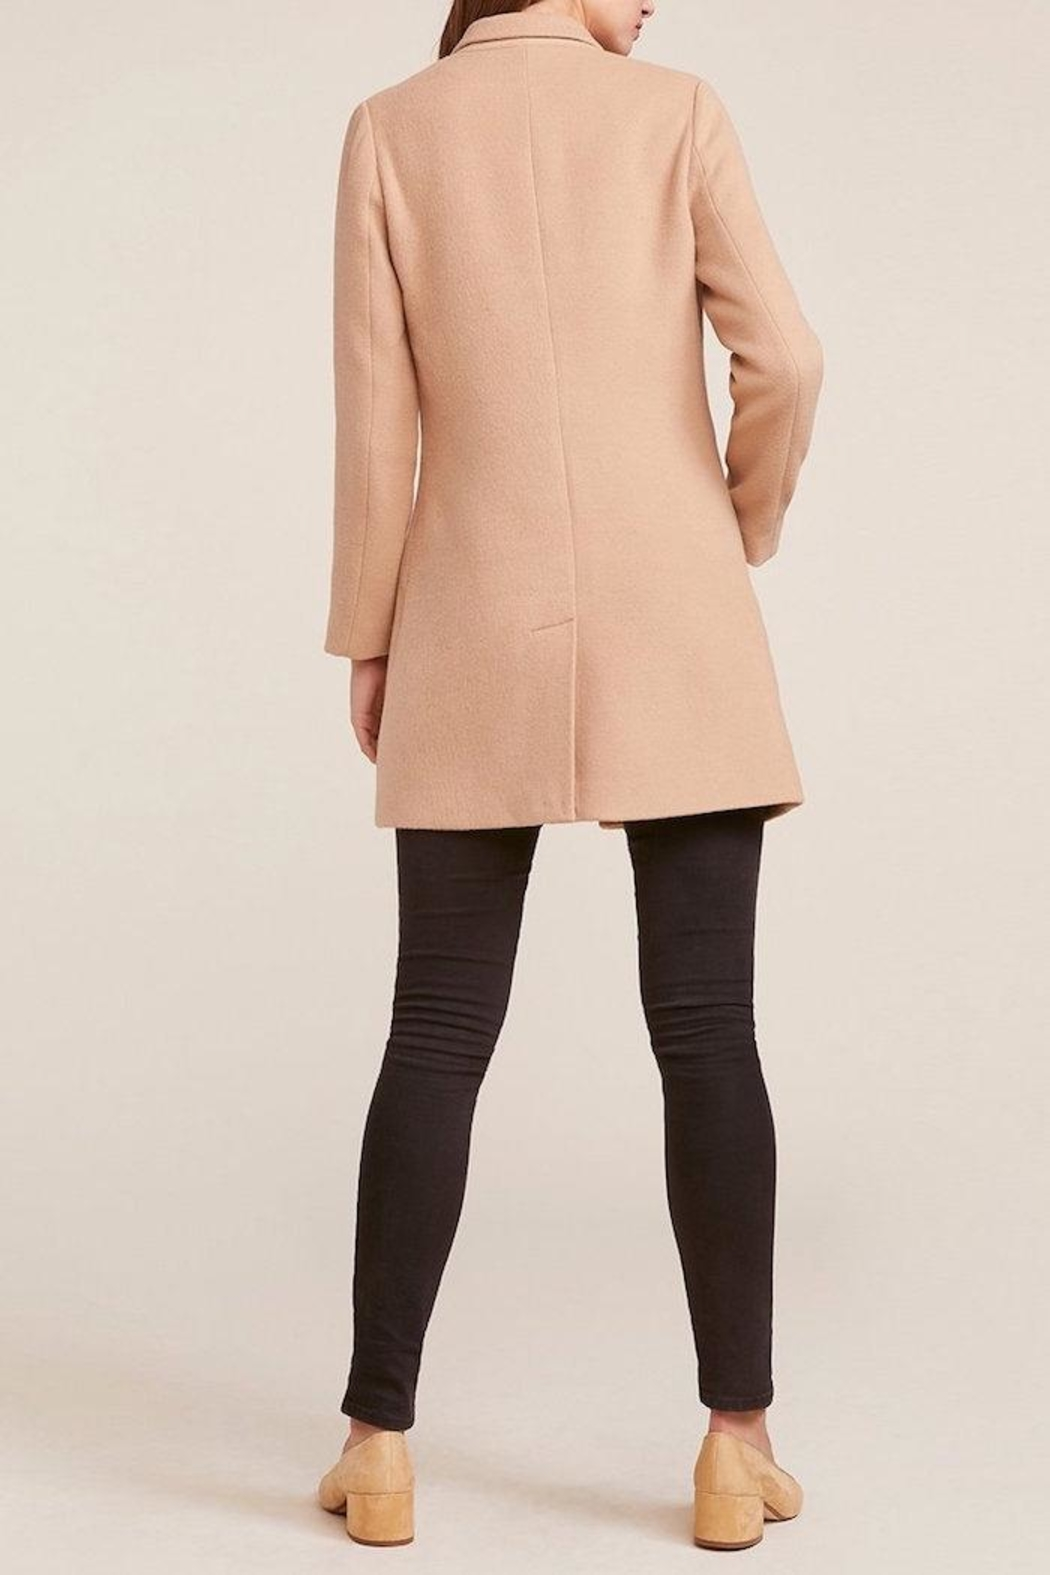 BB Dakota Twill Camel Coat - Side Cropped Image